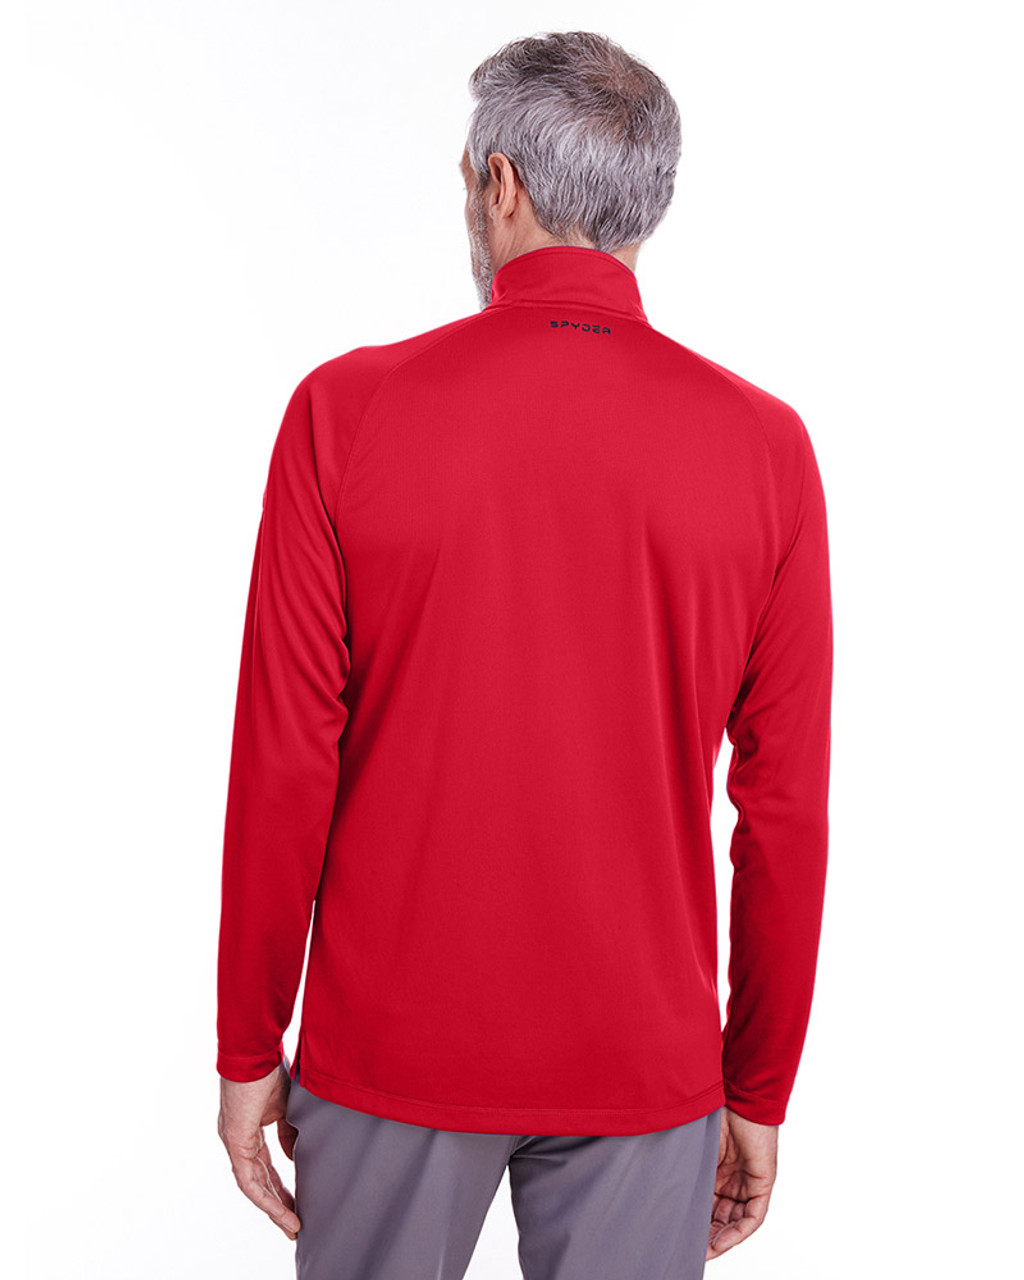 Red - back, S16797 Spyder Men's Freestyle Half-Zip Pullover Sweatshirt | Blankclothing.ca